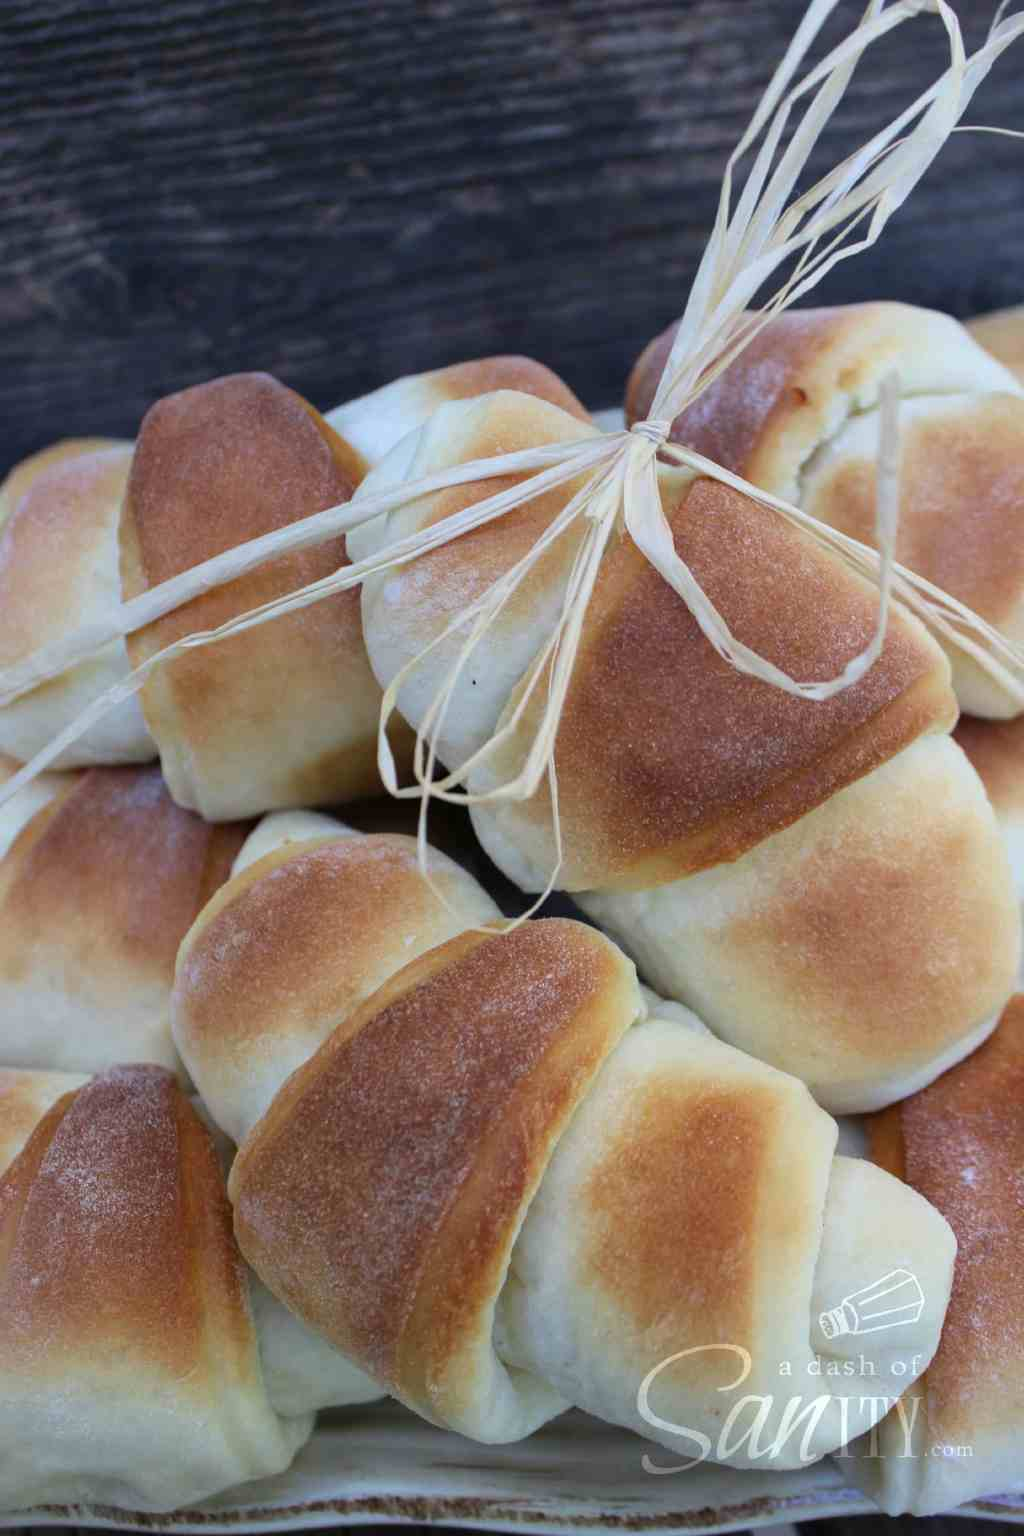 Dinner Sweet Rolls are delicious, soft, light rolls that are the perfect addition to any meal. These are so addicting, you may want to make a double batch.